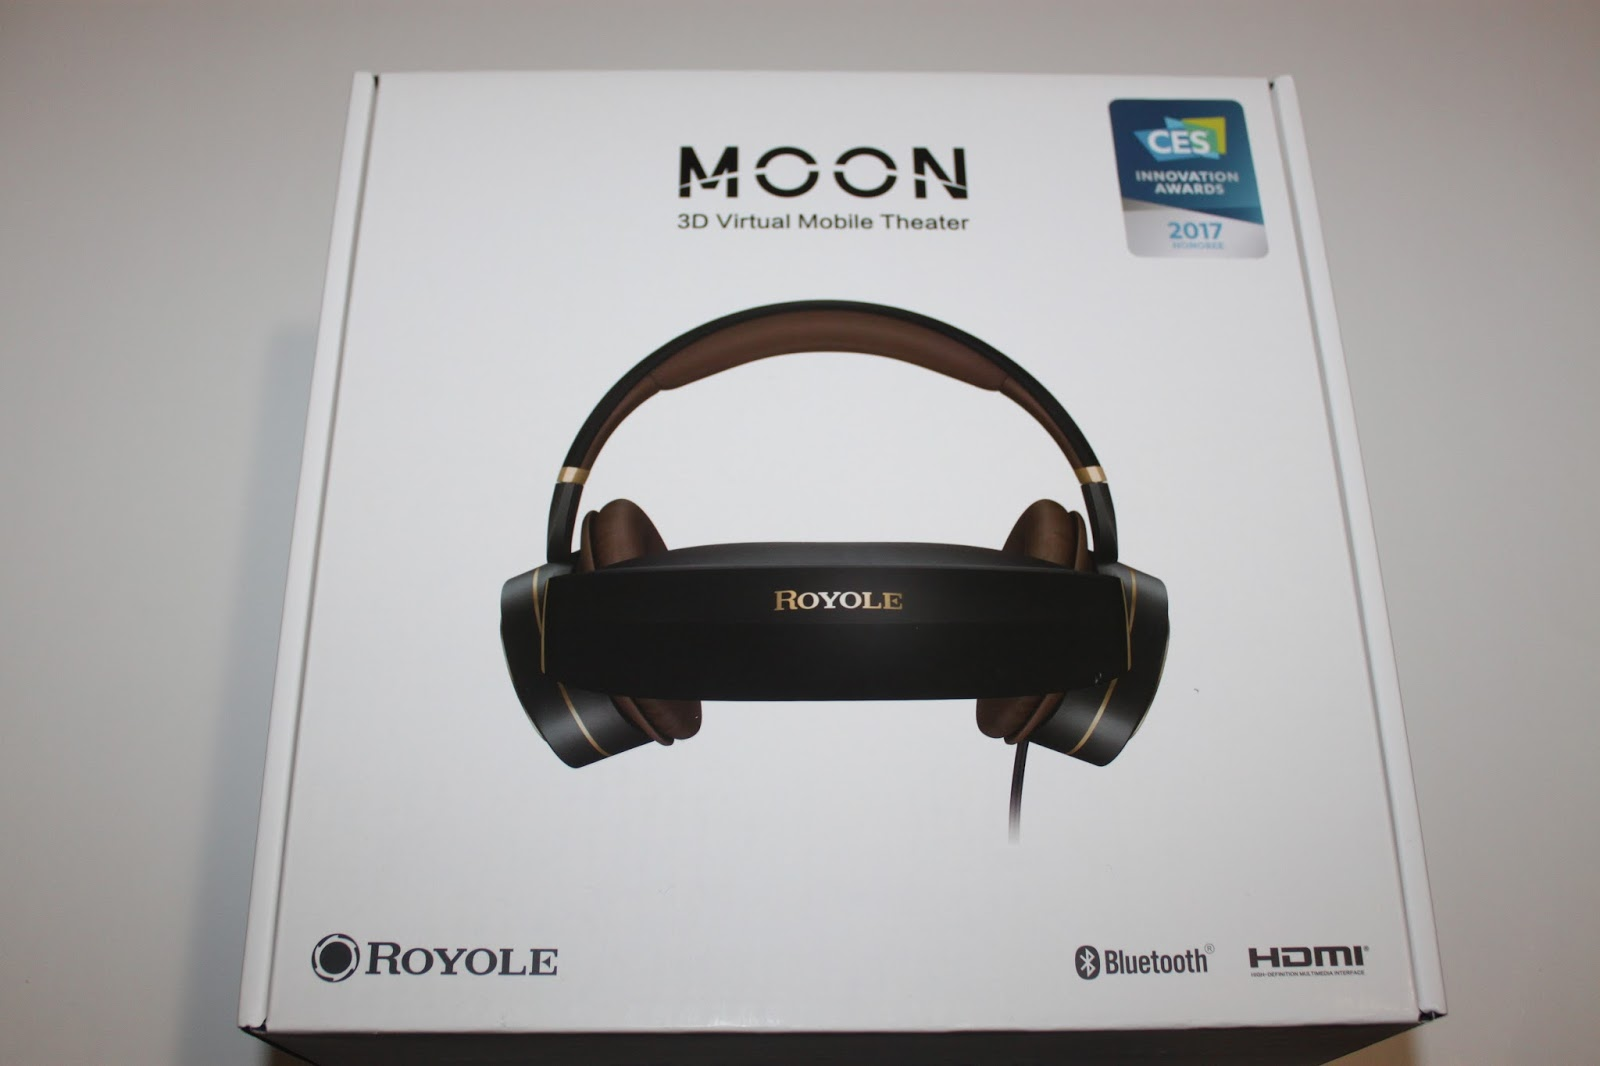 Royole Moon Stereowise Plus Royole Moon 3d Virtual Mobile Theater Review